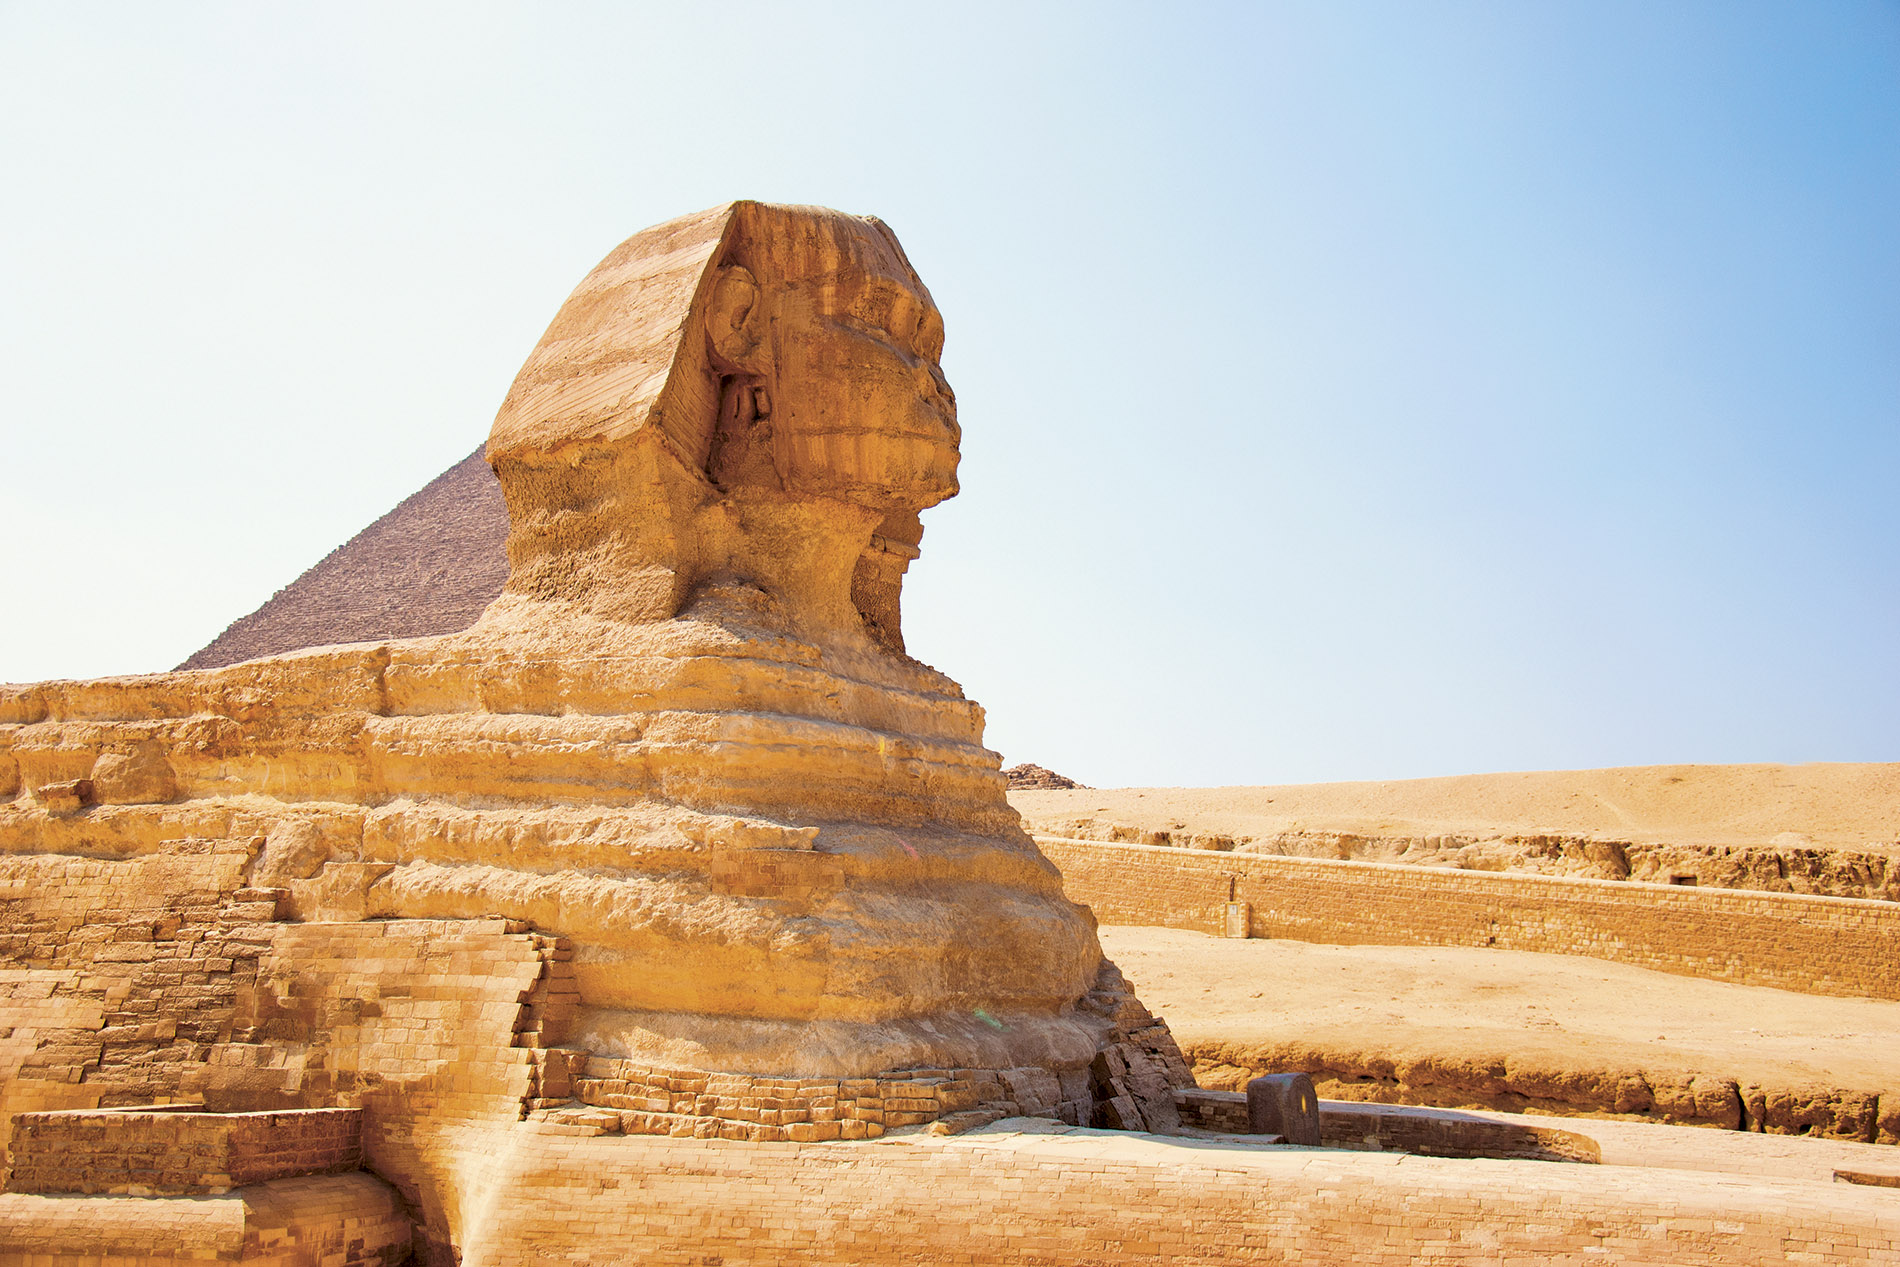 a view of a large rock with Great Sphinx of Giza in the background